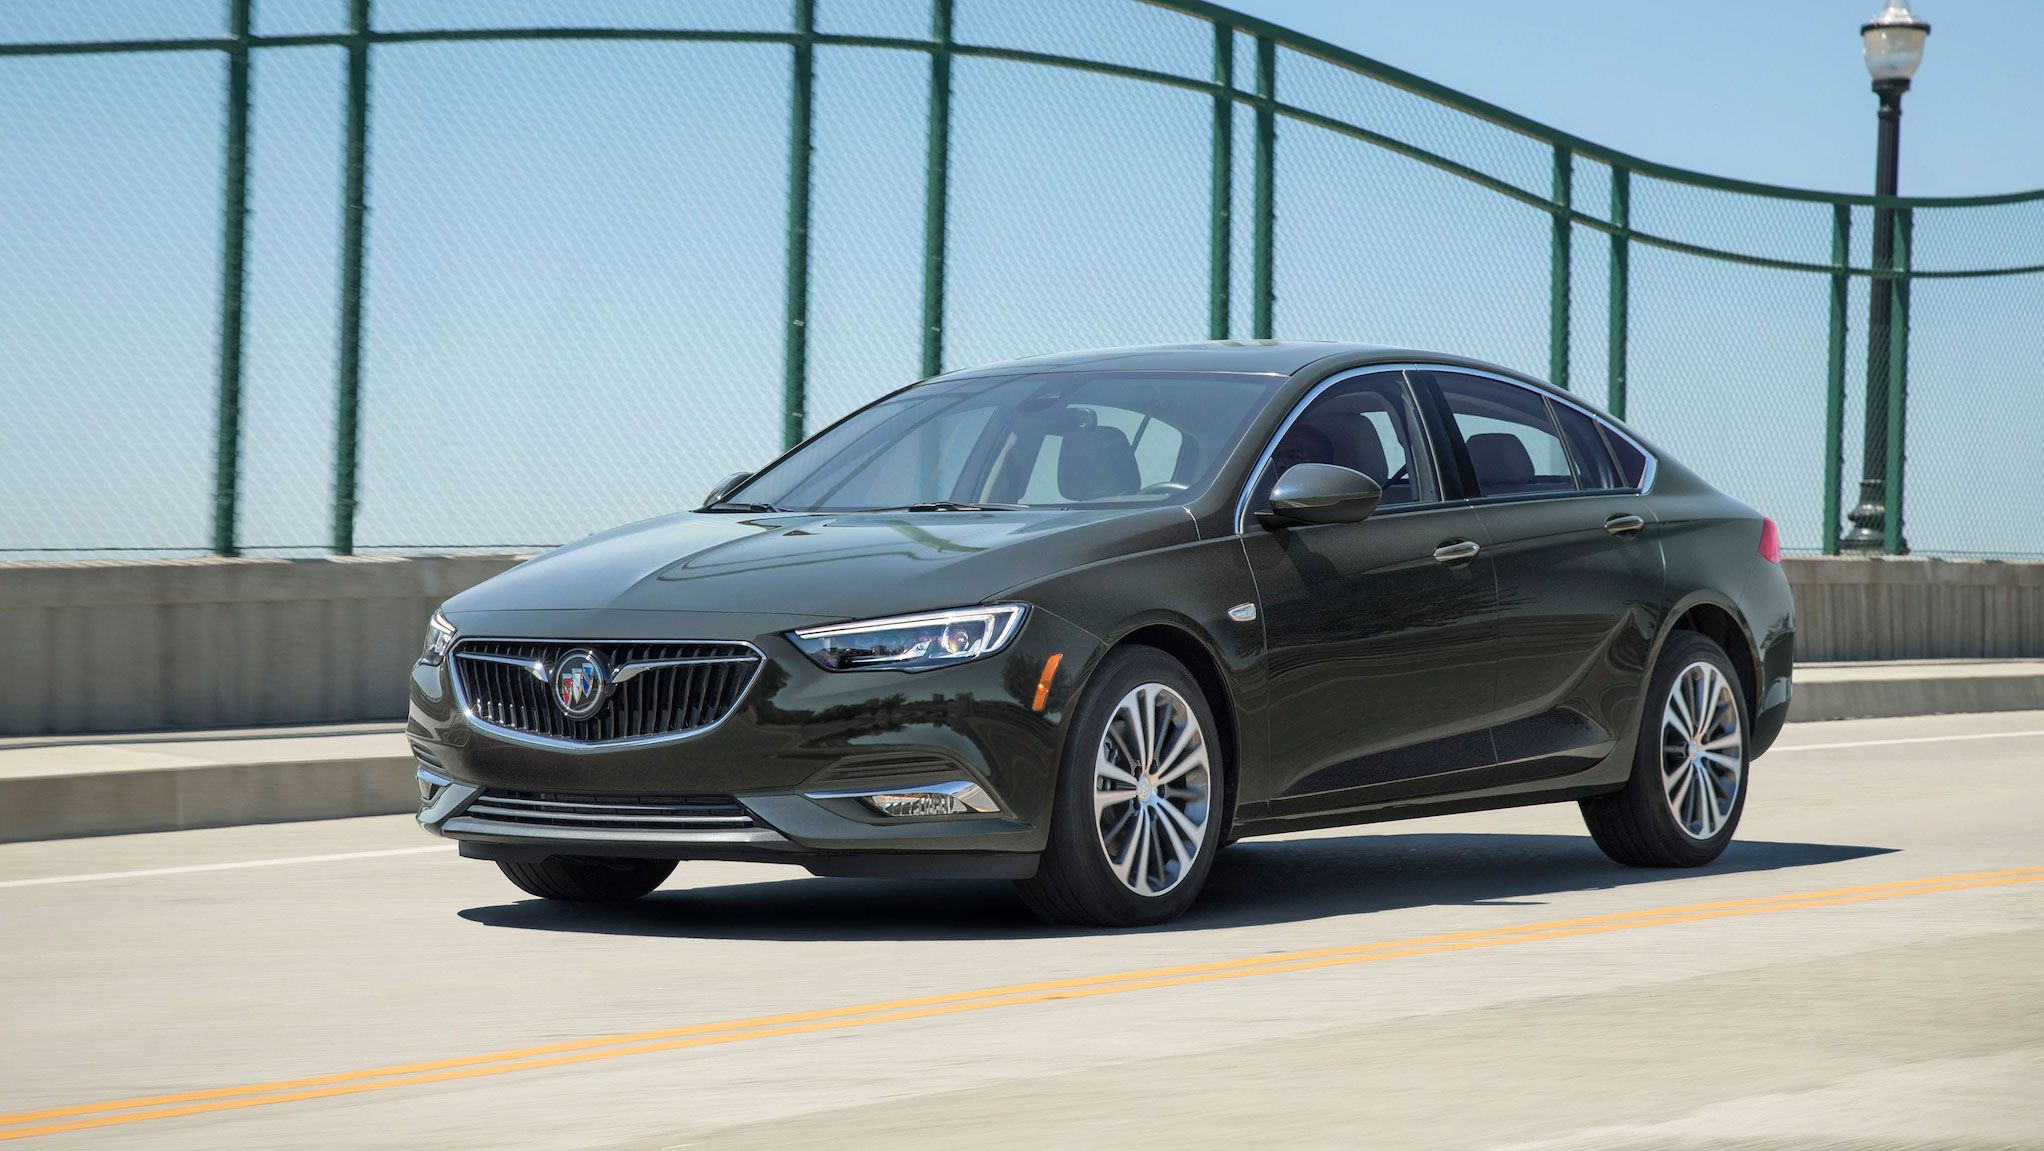 2020 Buick Regal Sportback Review, Pricing, And Specs New 2021 Buick Regal Gs 0-60, Interior, Engine